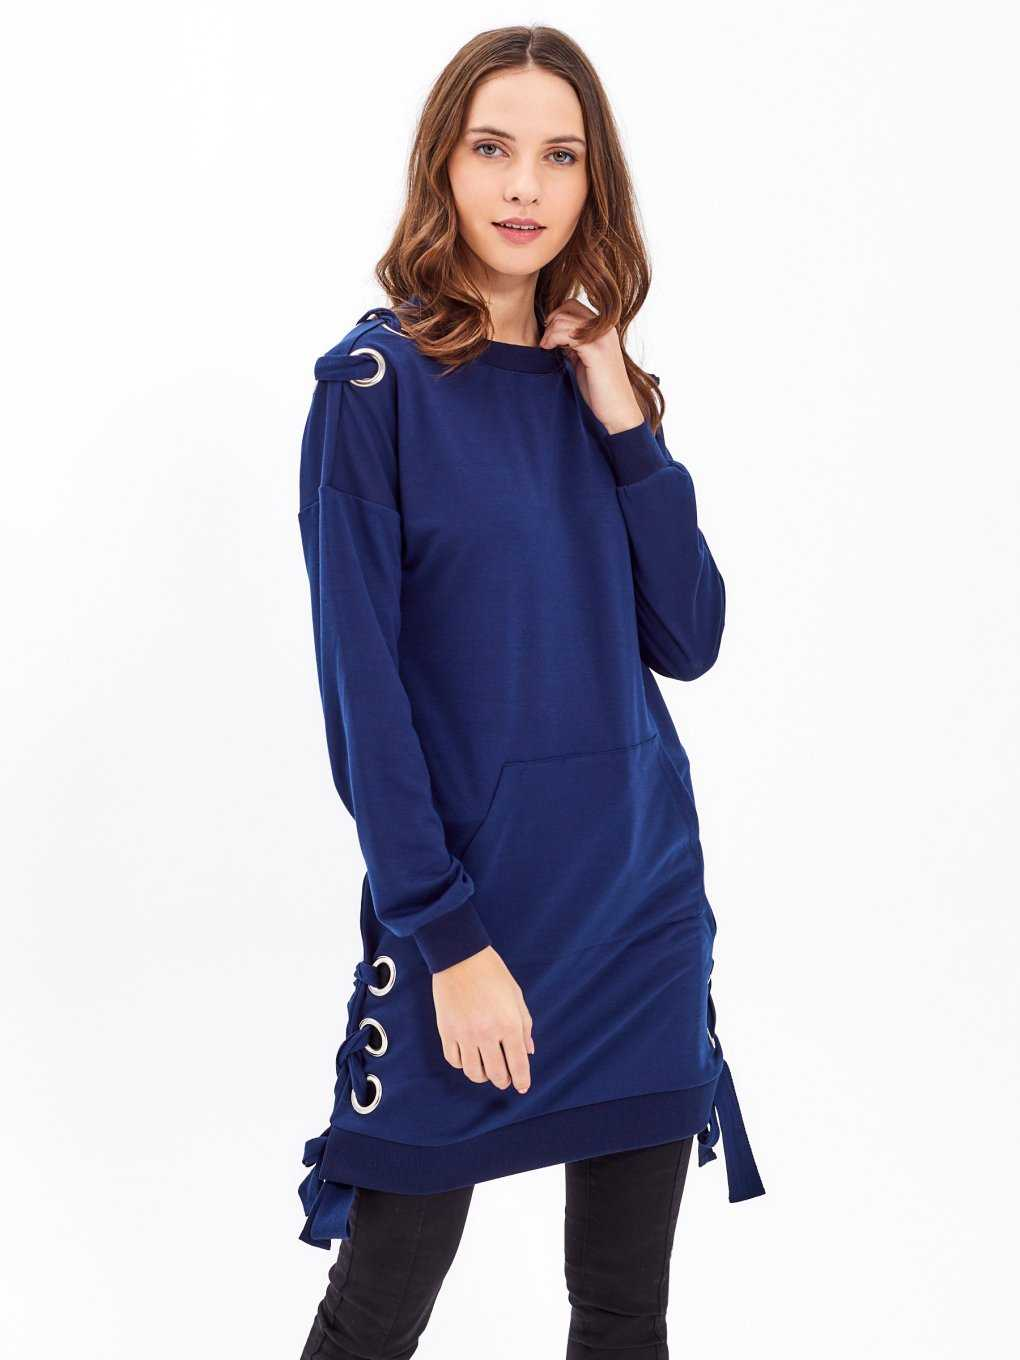 LONGLINE SWEATSHIRT WITH SIDE LACING